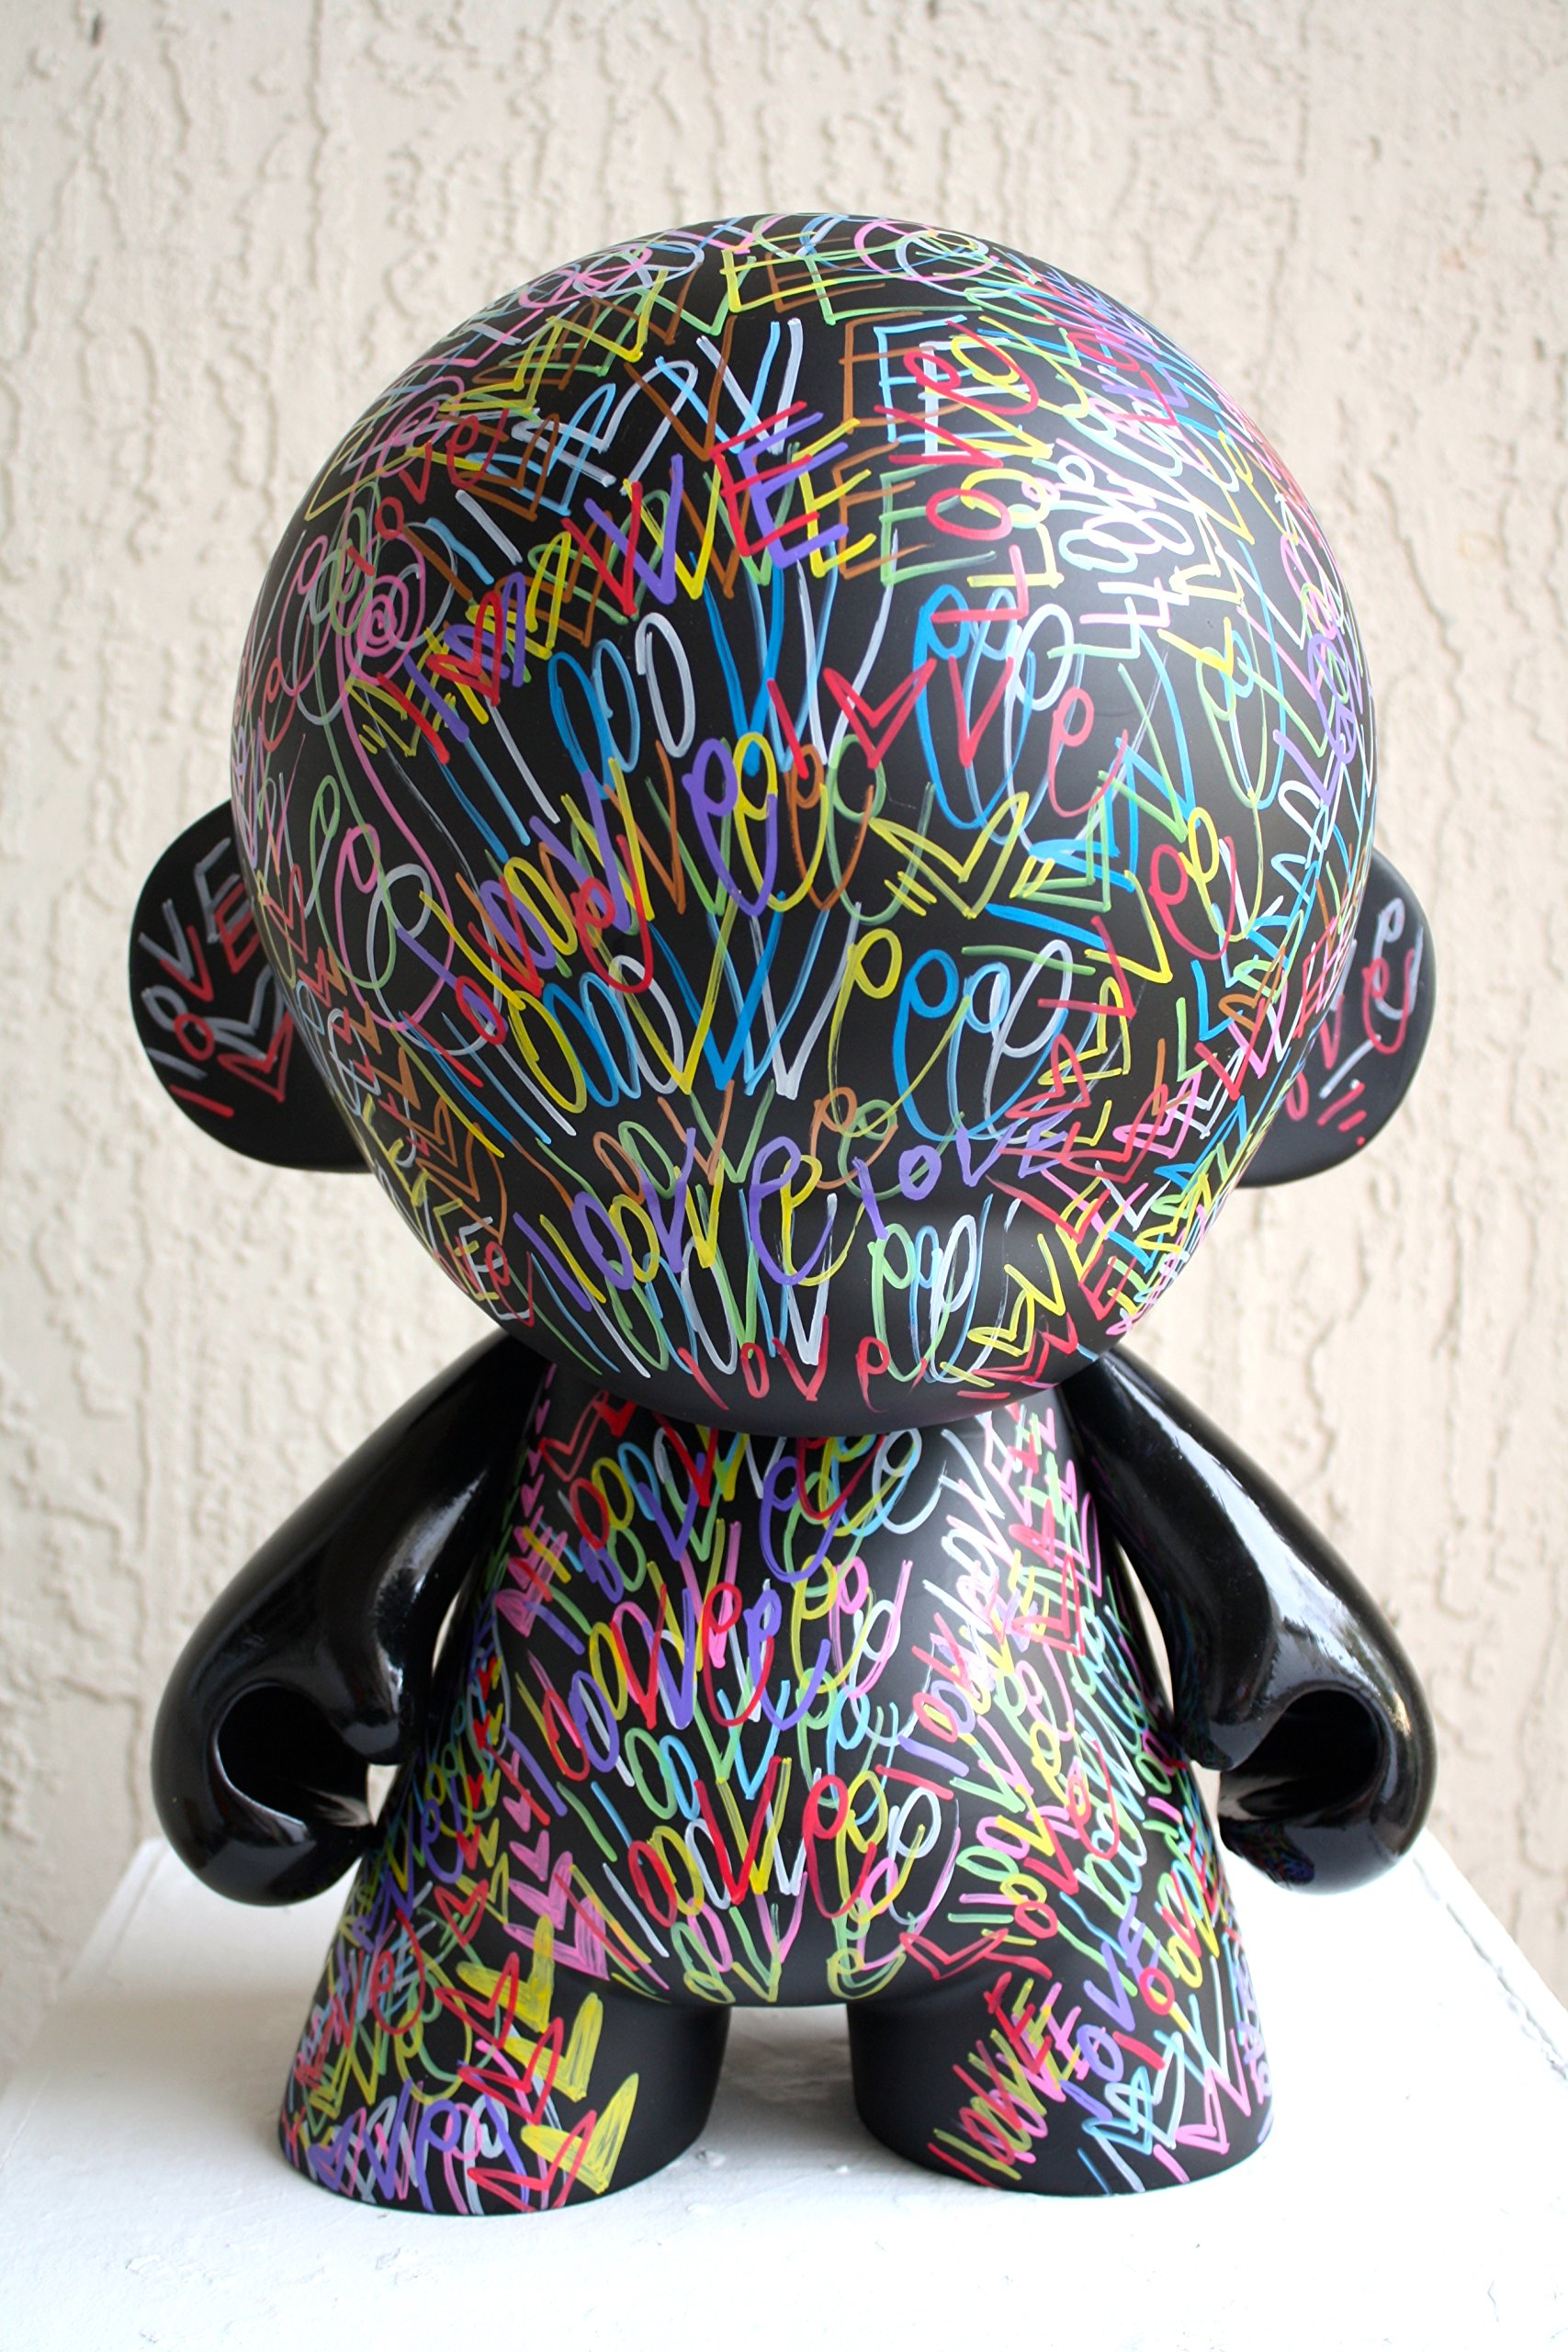 Chris Riggs kidrobot mega munny dunny kid robot vinyl toy modern 18'' nyc contemporary modern graffiti pop art love world peace hearts street